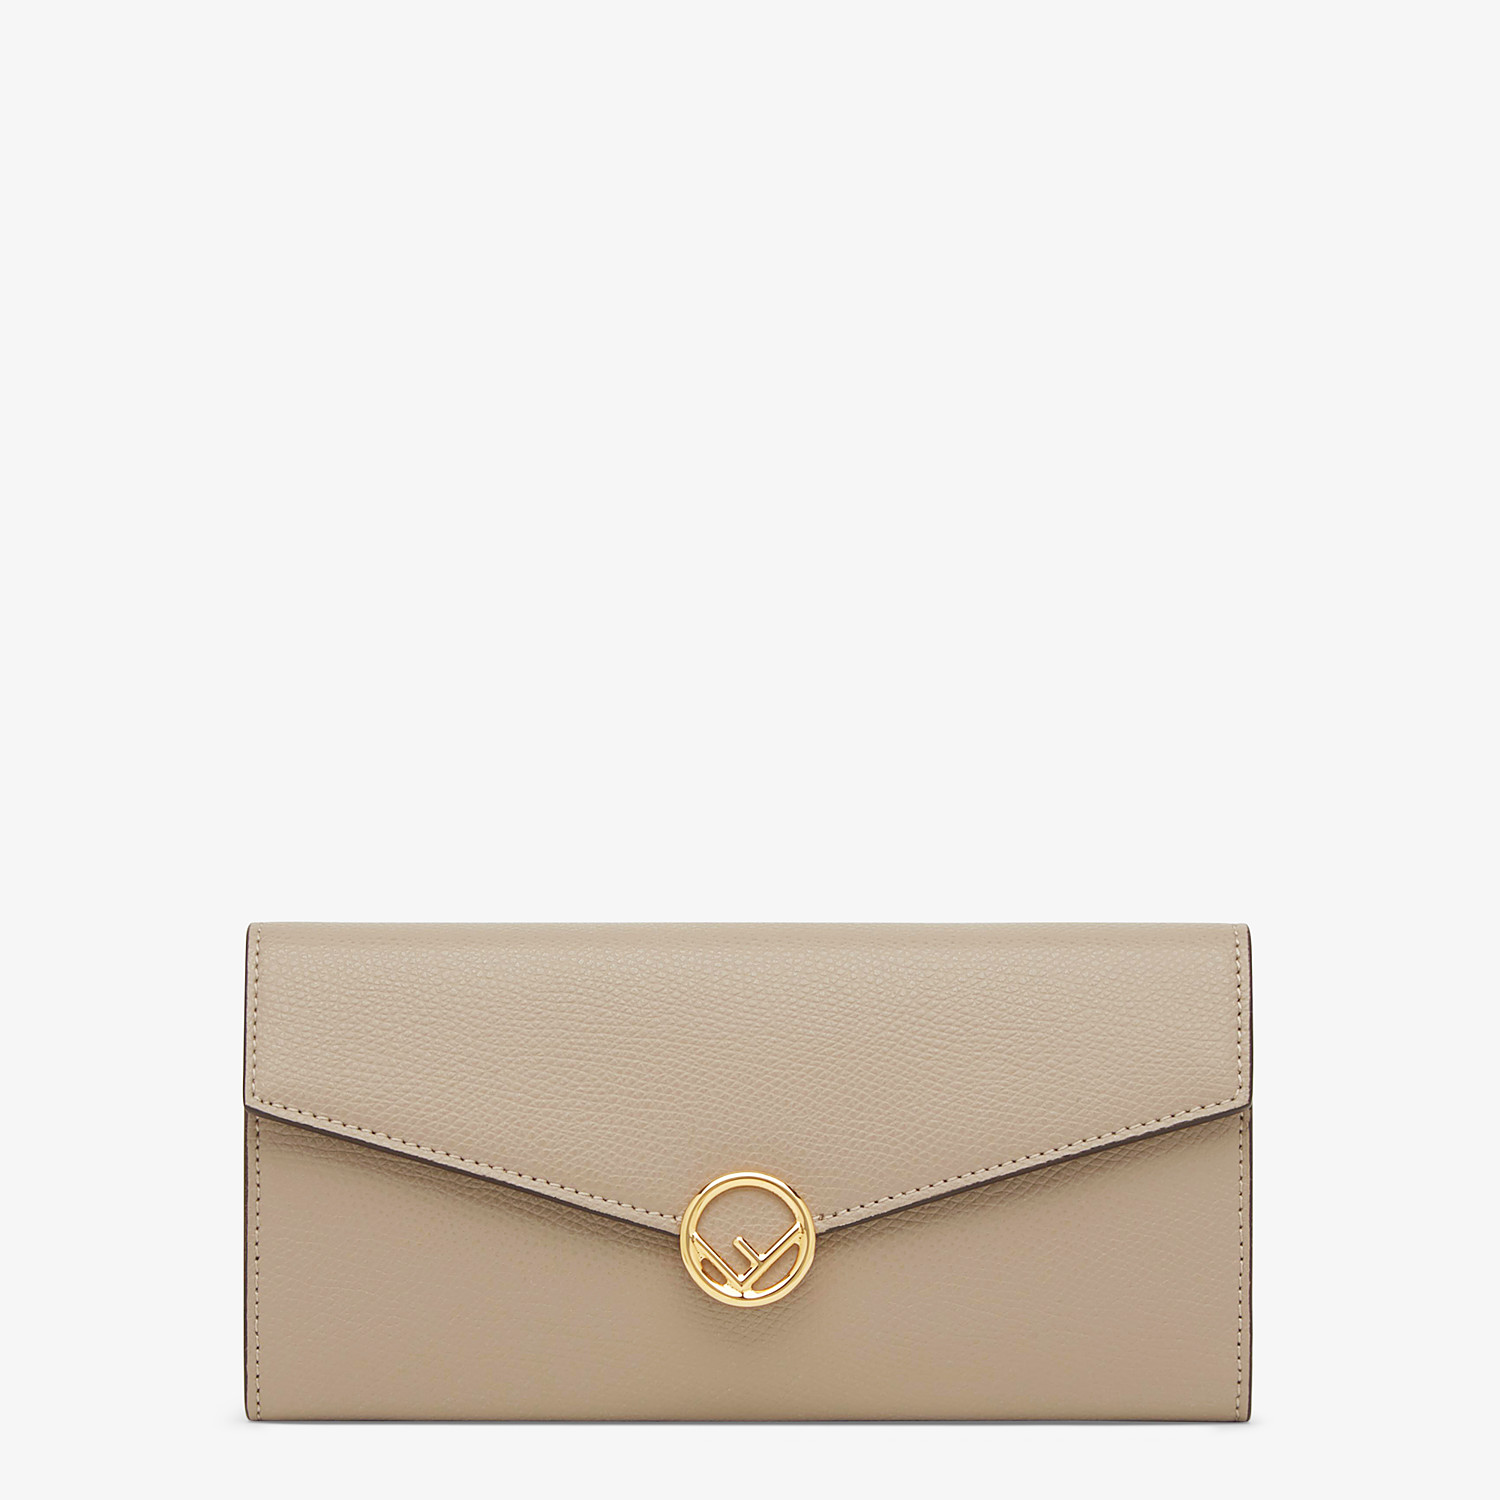 FENDI CONTINENTAL - Beige leather wallet - view 1 detail